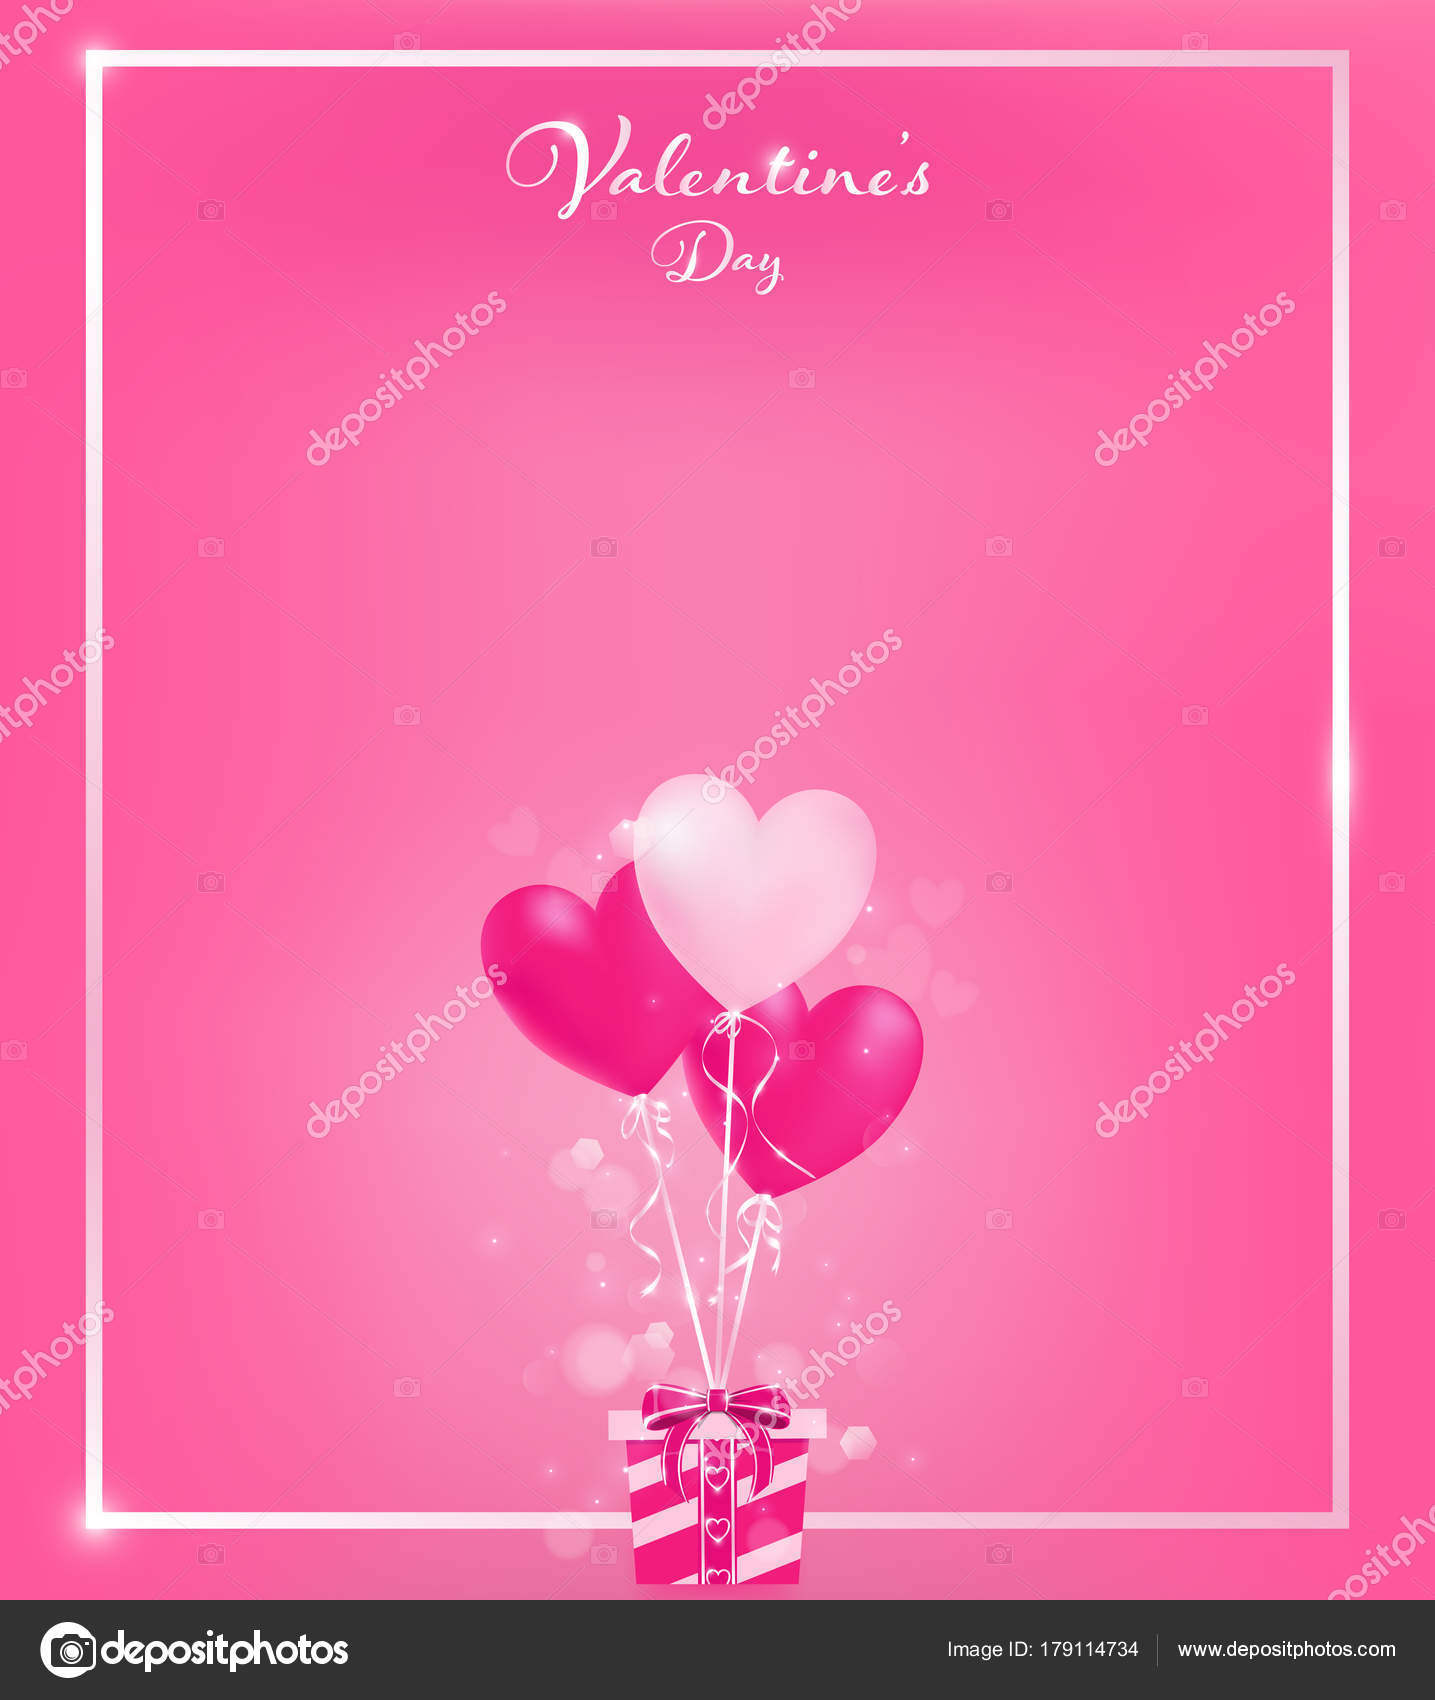 Soft pink invitation card pearl pink border heart balloons tie soft pink invitation card with pearl pink border and heart balloons tie to a gift box along with magic flares are dropping down artwork usage in stopboris Gallery